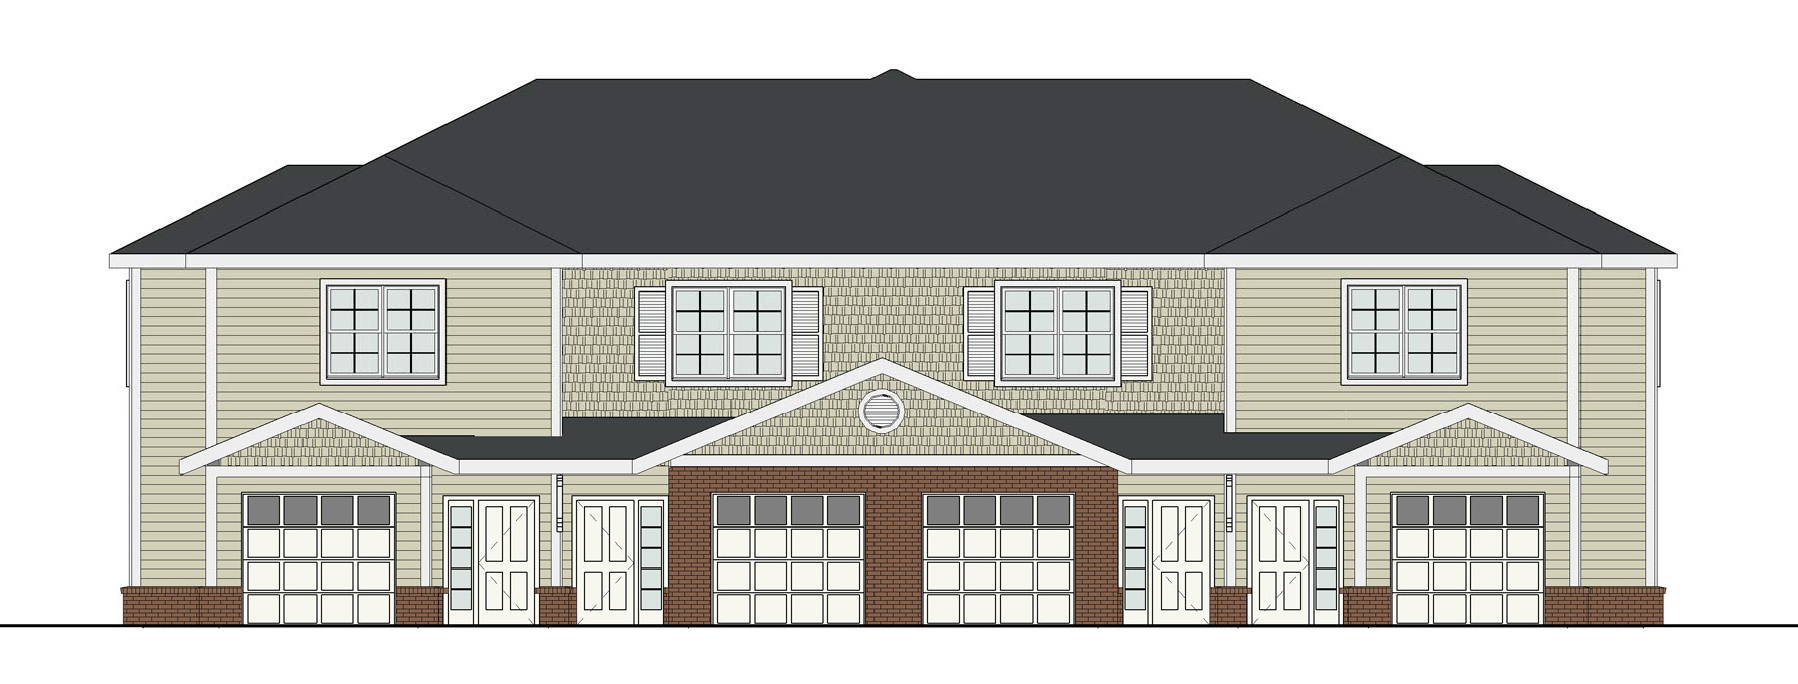 Each of the Blacklick Crossing apartments will have a garage.